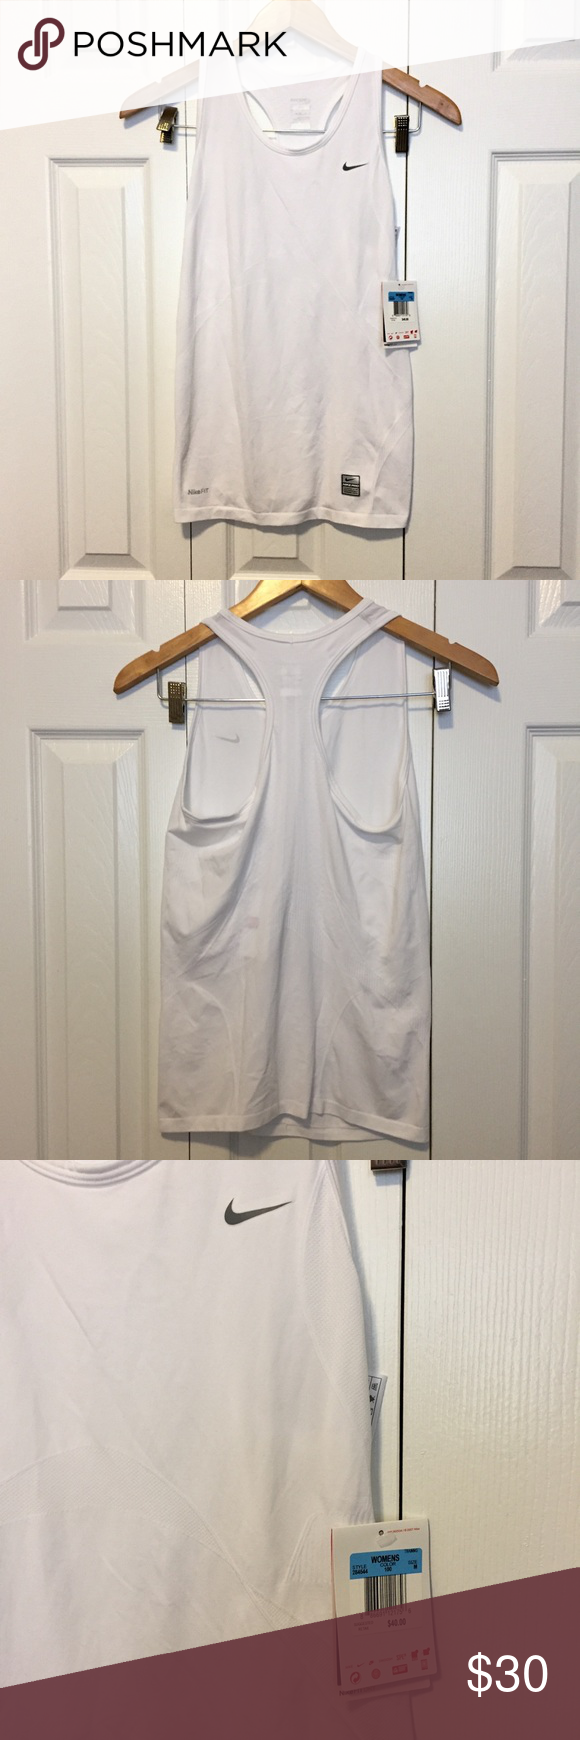 """Nike FitDry White Workout Tank NWT Nike FitDry Workout/Compression Training Tank. Perfect workout top for any activity. Sweat-wicking capabilities. Fits true to size with stretch. Appx: 32"""" bust, 25.5"""" length. NWT-never worn, excellent condition. Nike Tops Tank Tops"""